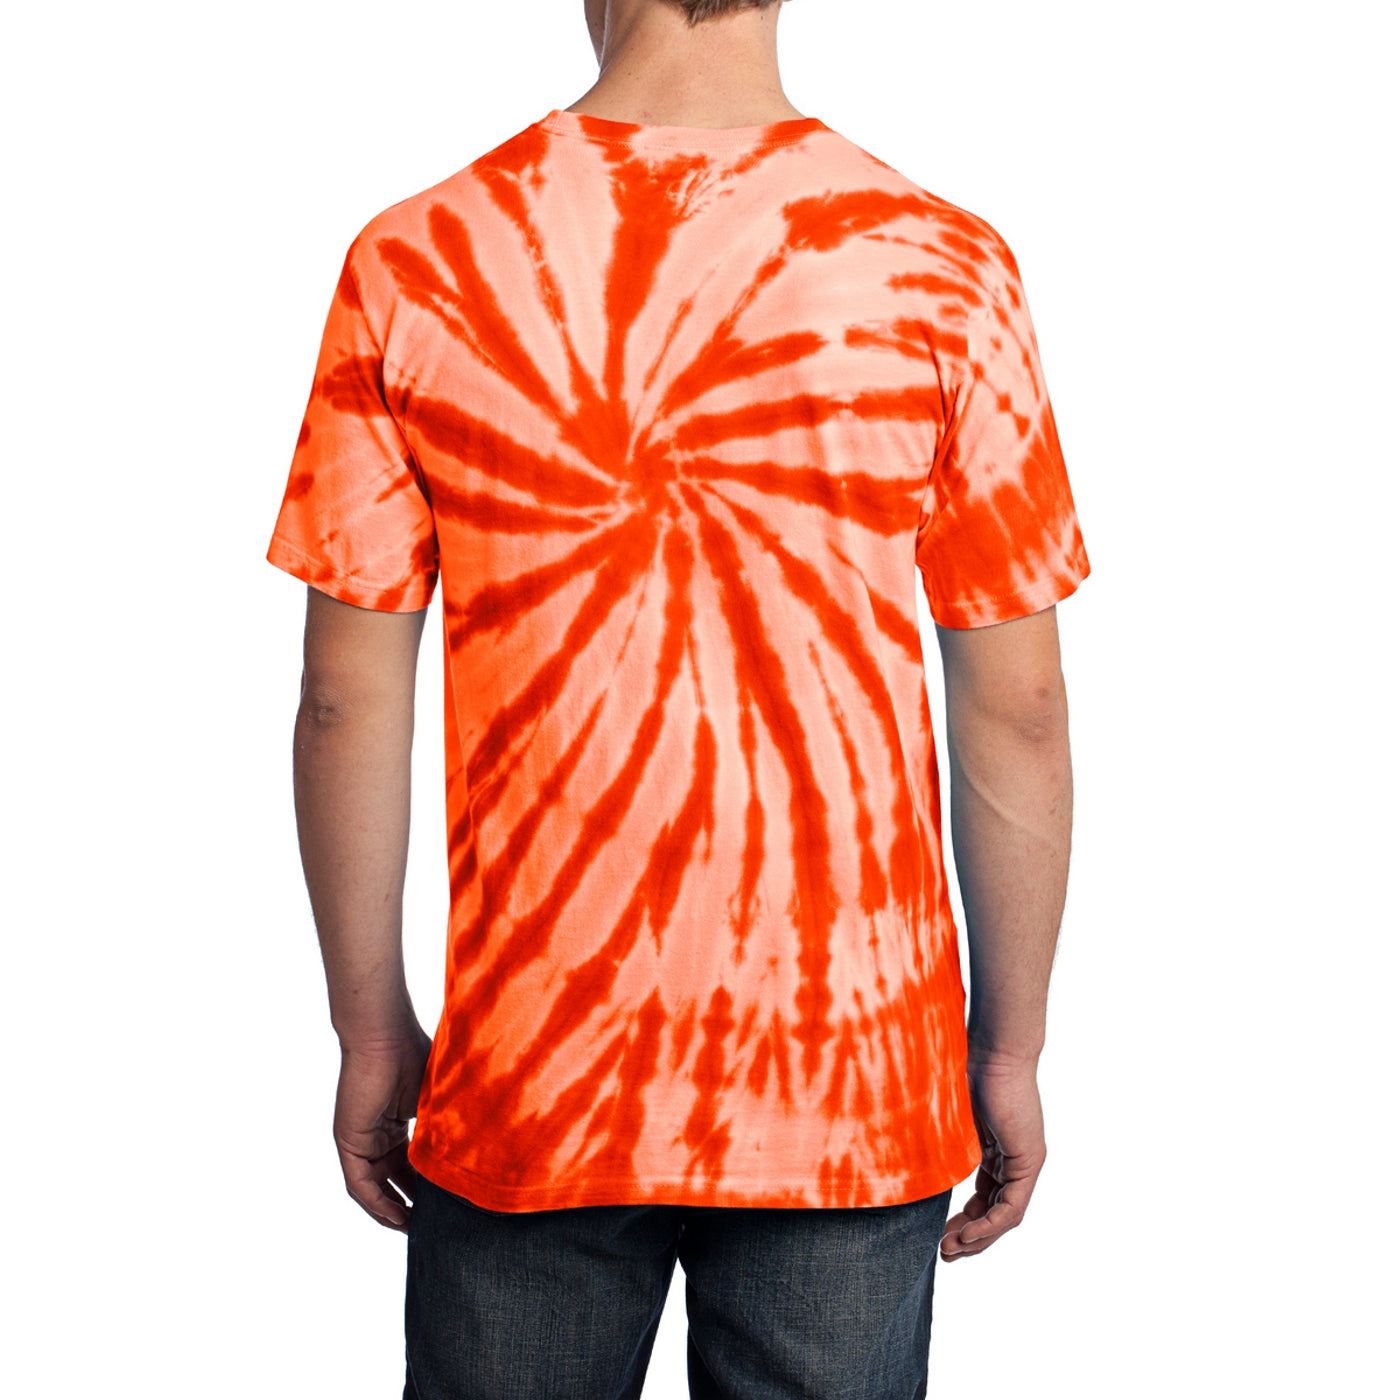 Men's Tie-Dye Tee - Orange - Back